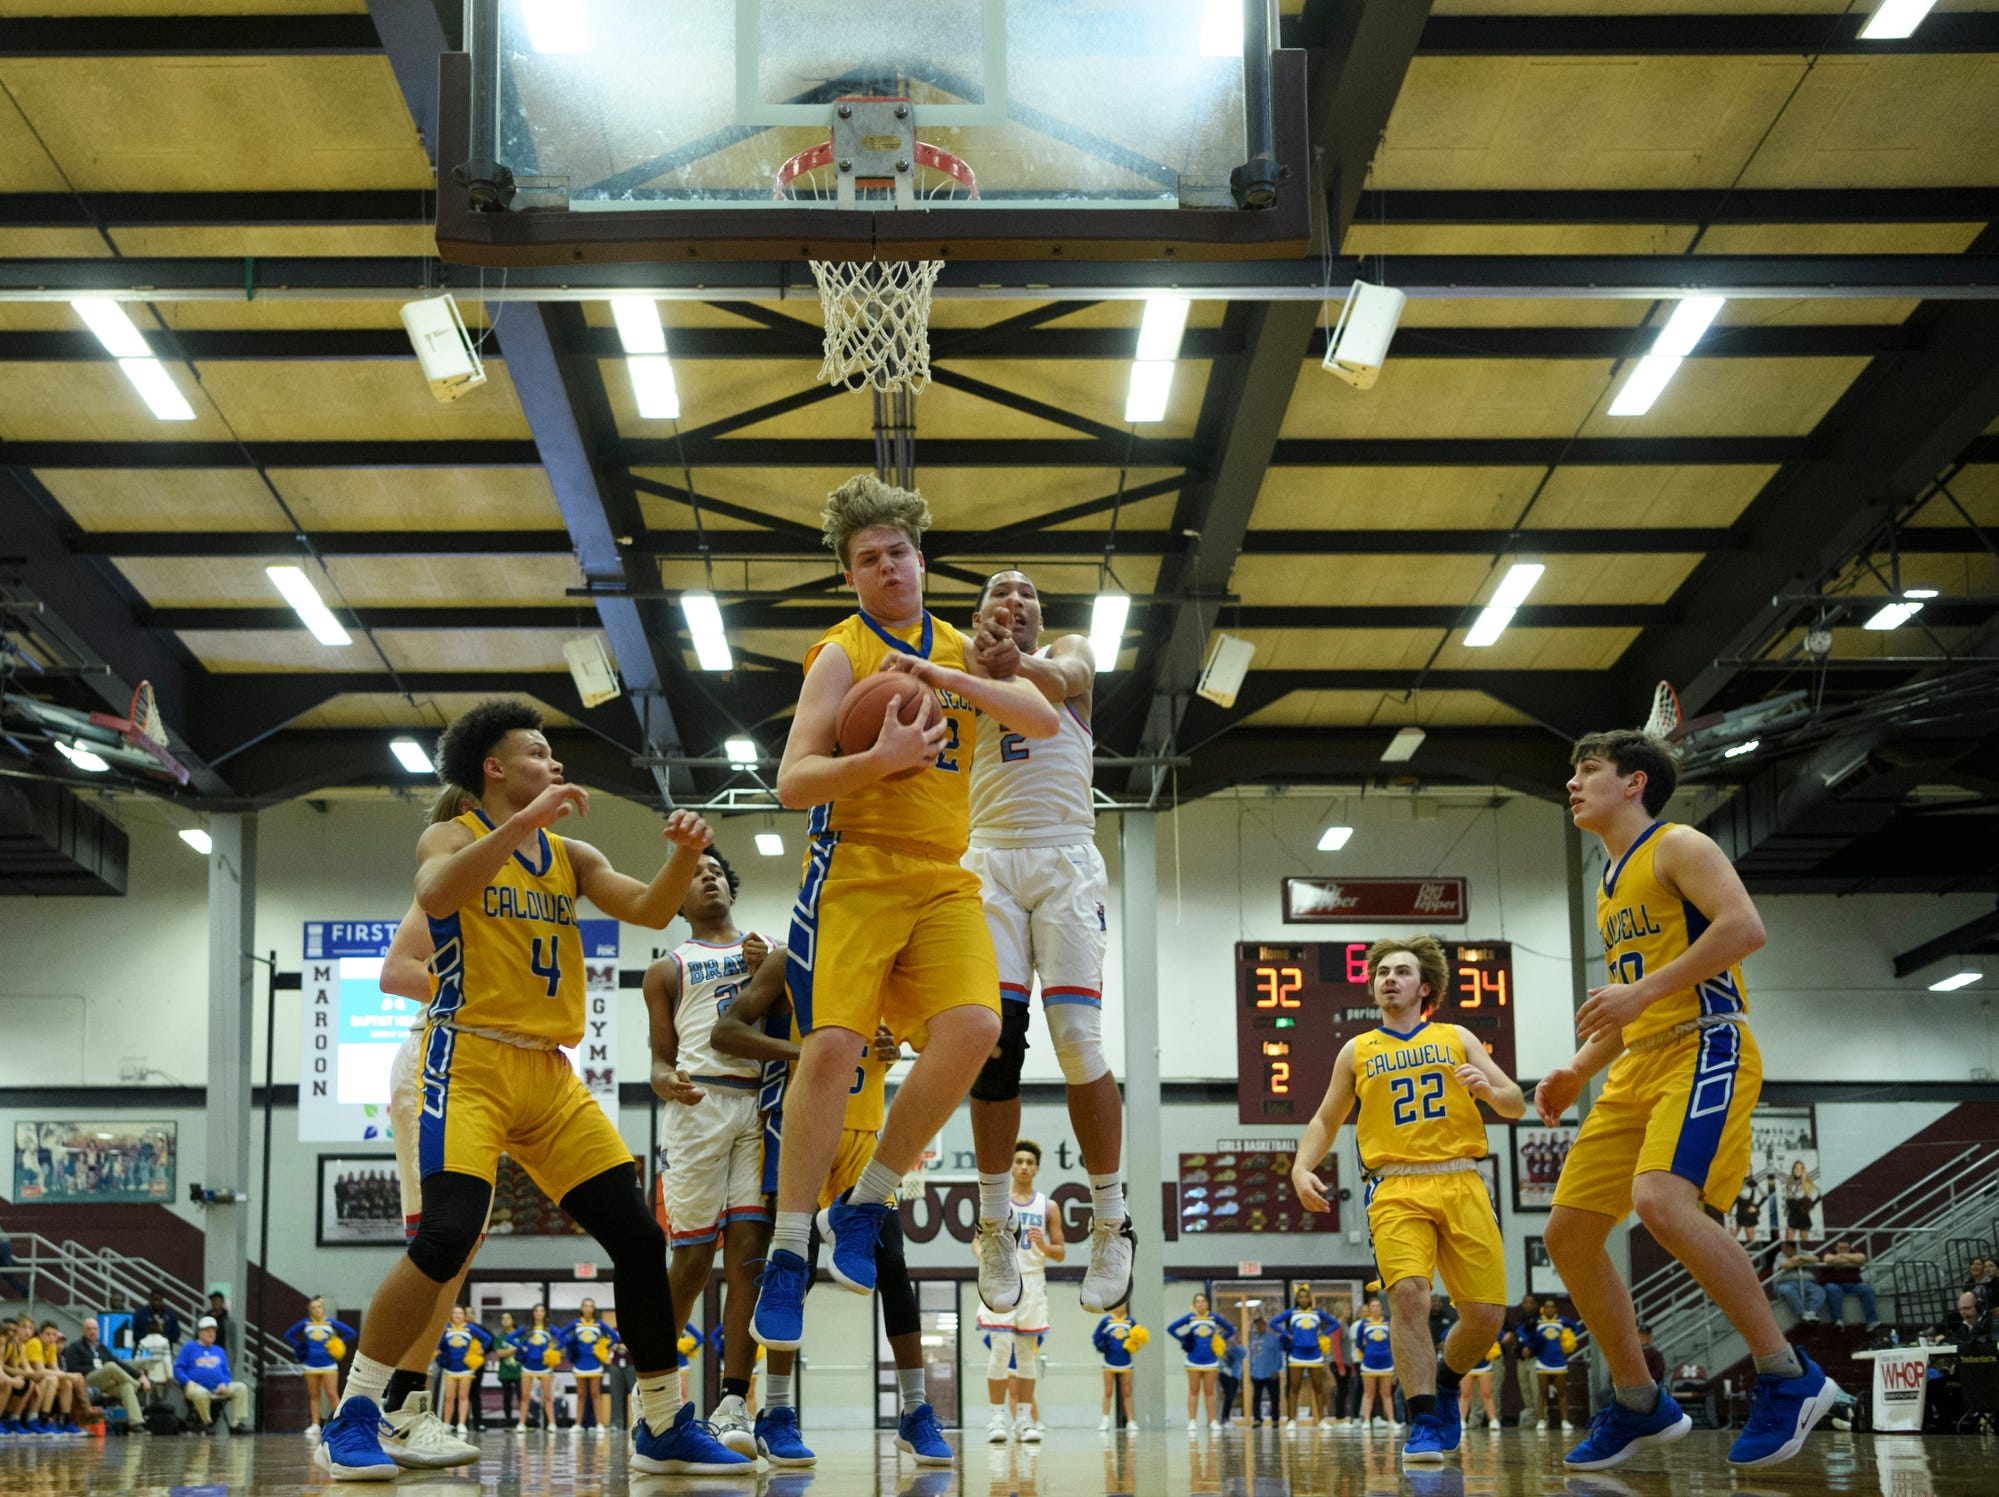 Caldwell County's Cole Smiley (42) and Union County's Kaleb Kanipe (2) fight for a rebound during the Boys Second Region tournament at Madisonville-North Hopkins High School in Madisonville, Ky., Monday, Feb. 25, 2019. The Tigers defeated the Braves 67-64 to advance to Friday's second region semifinal against University Heights Academy.